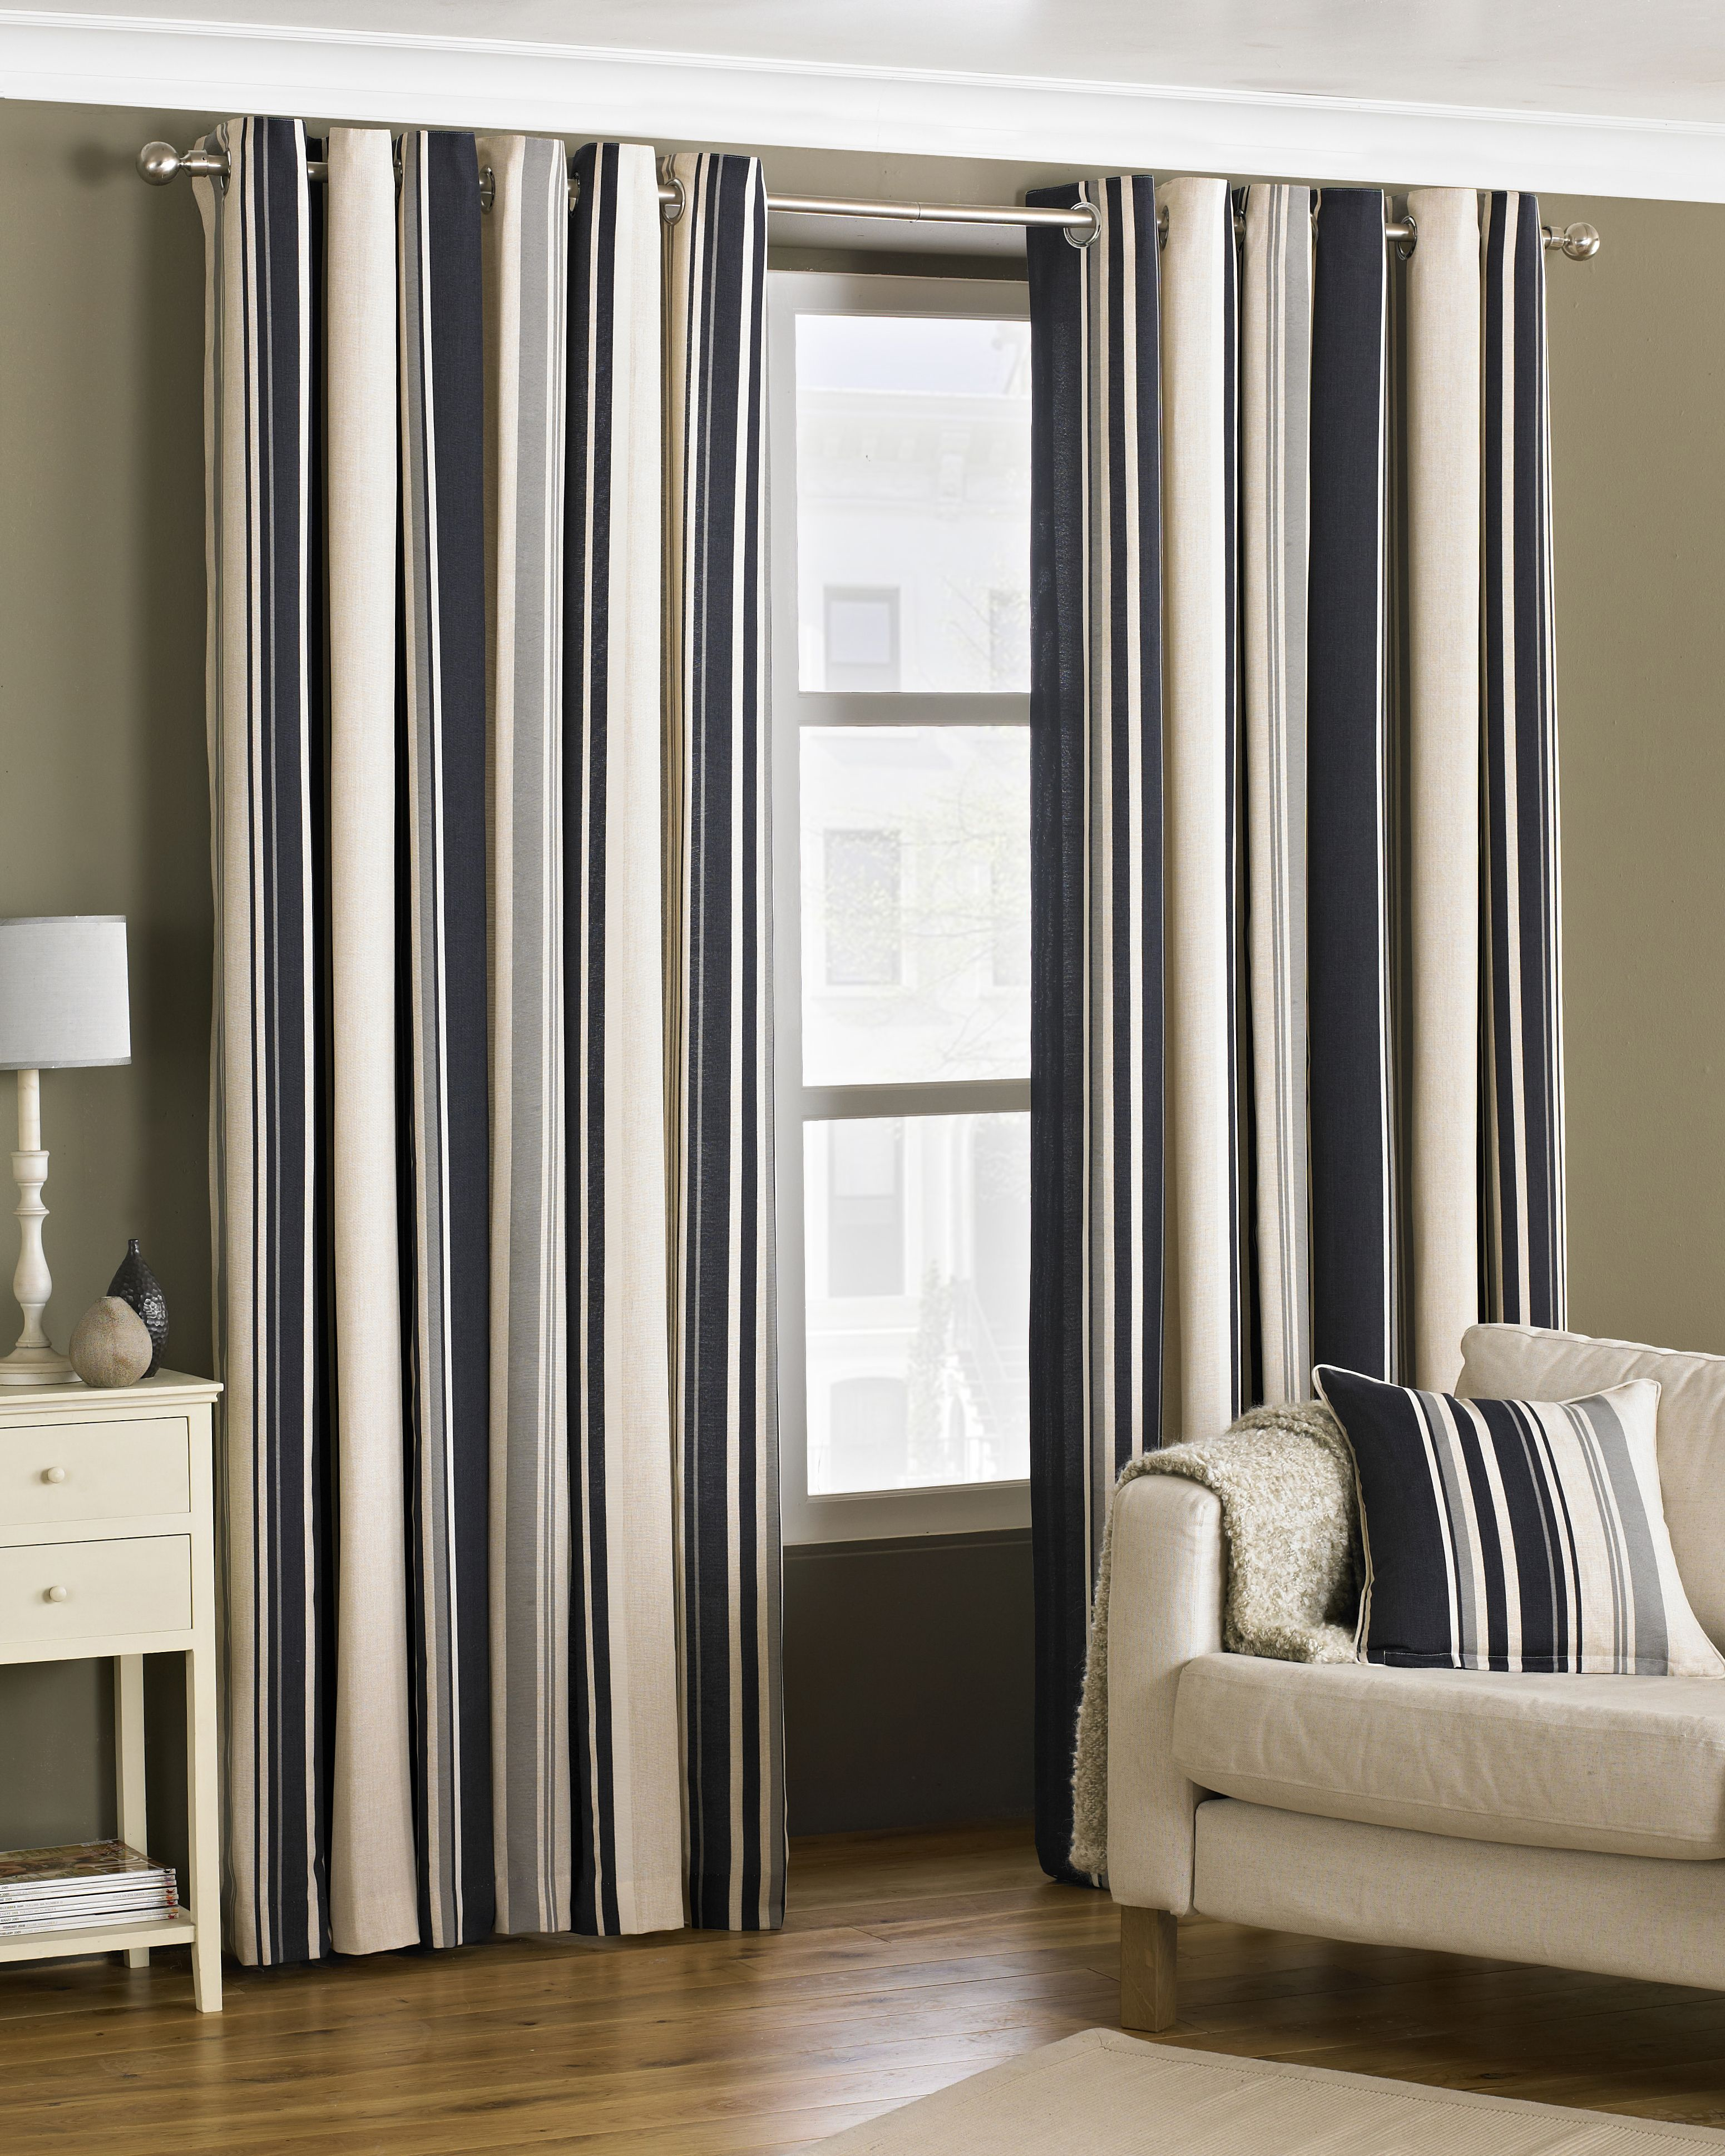 Broadway Striped Eyelet Curtains in Black